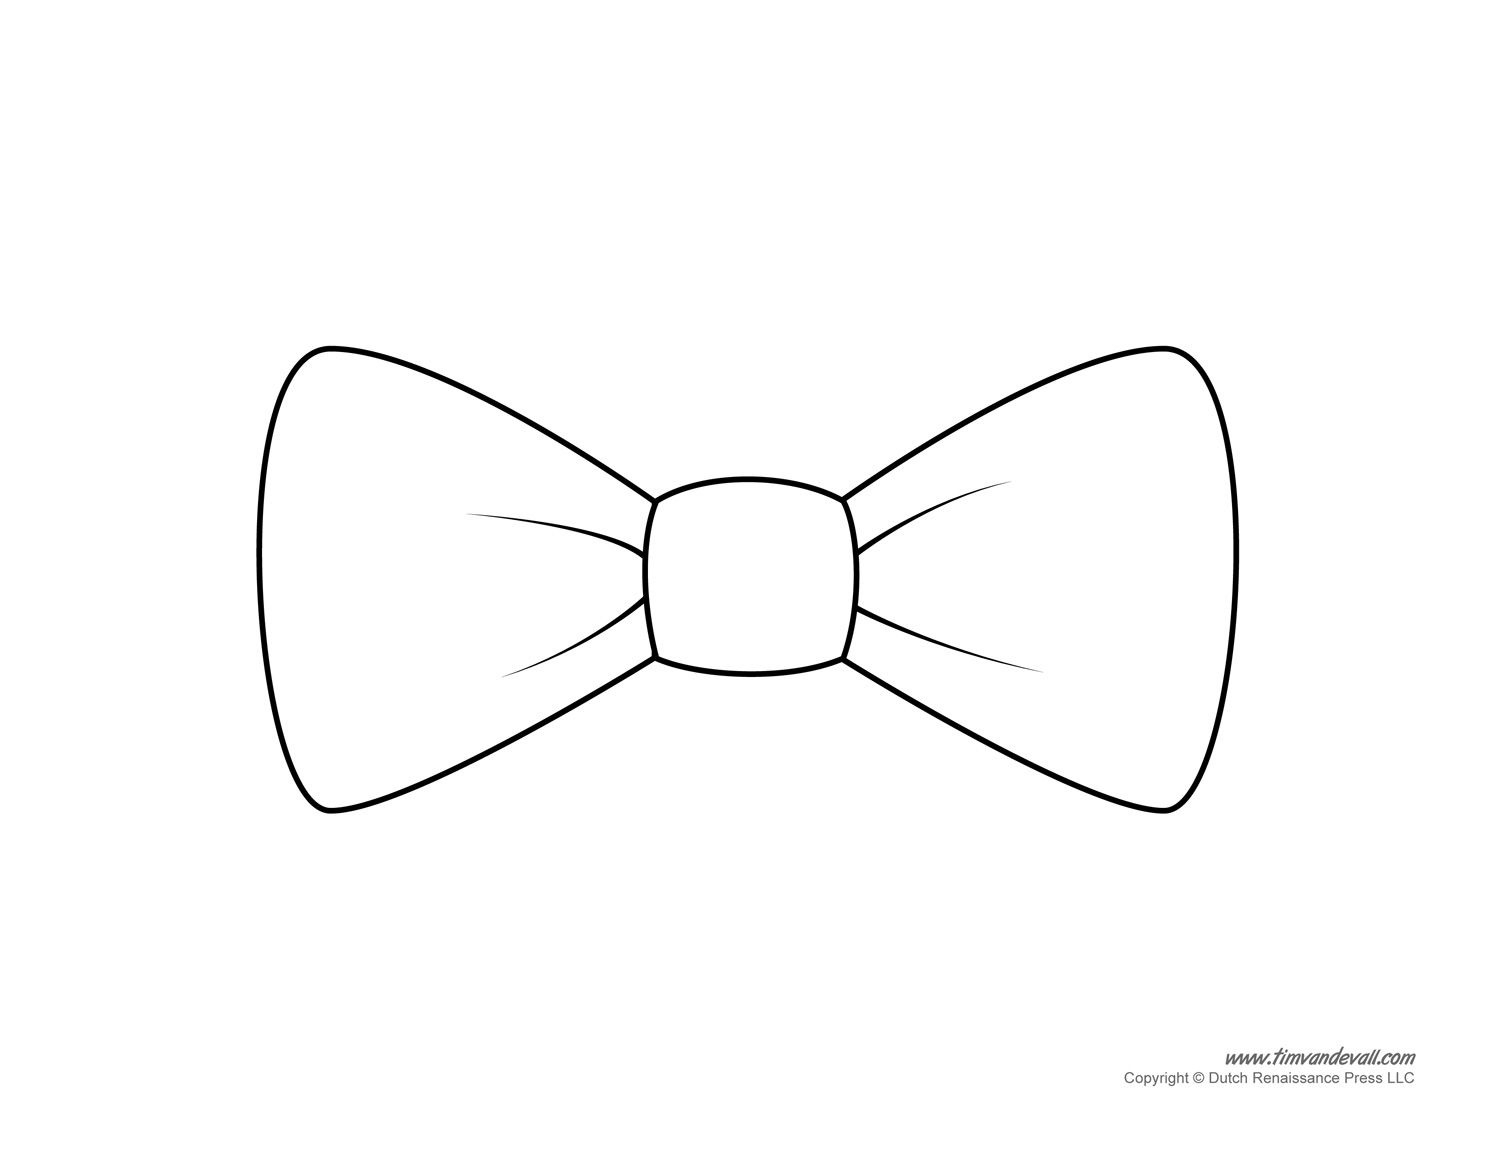 Bow tie letters flower. Bowtie clipart black and white